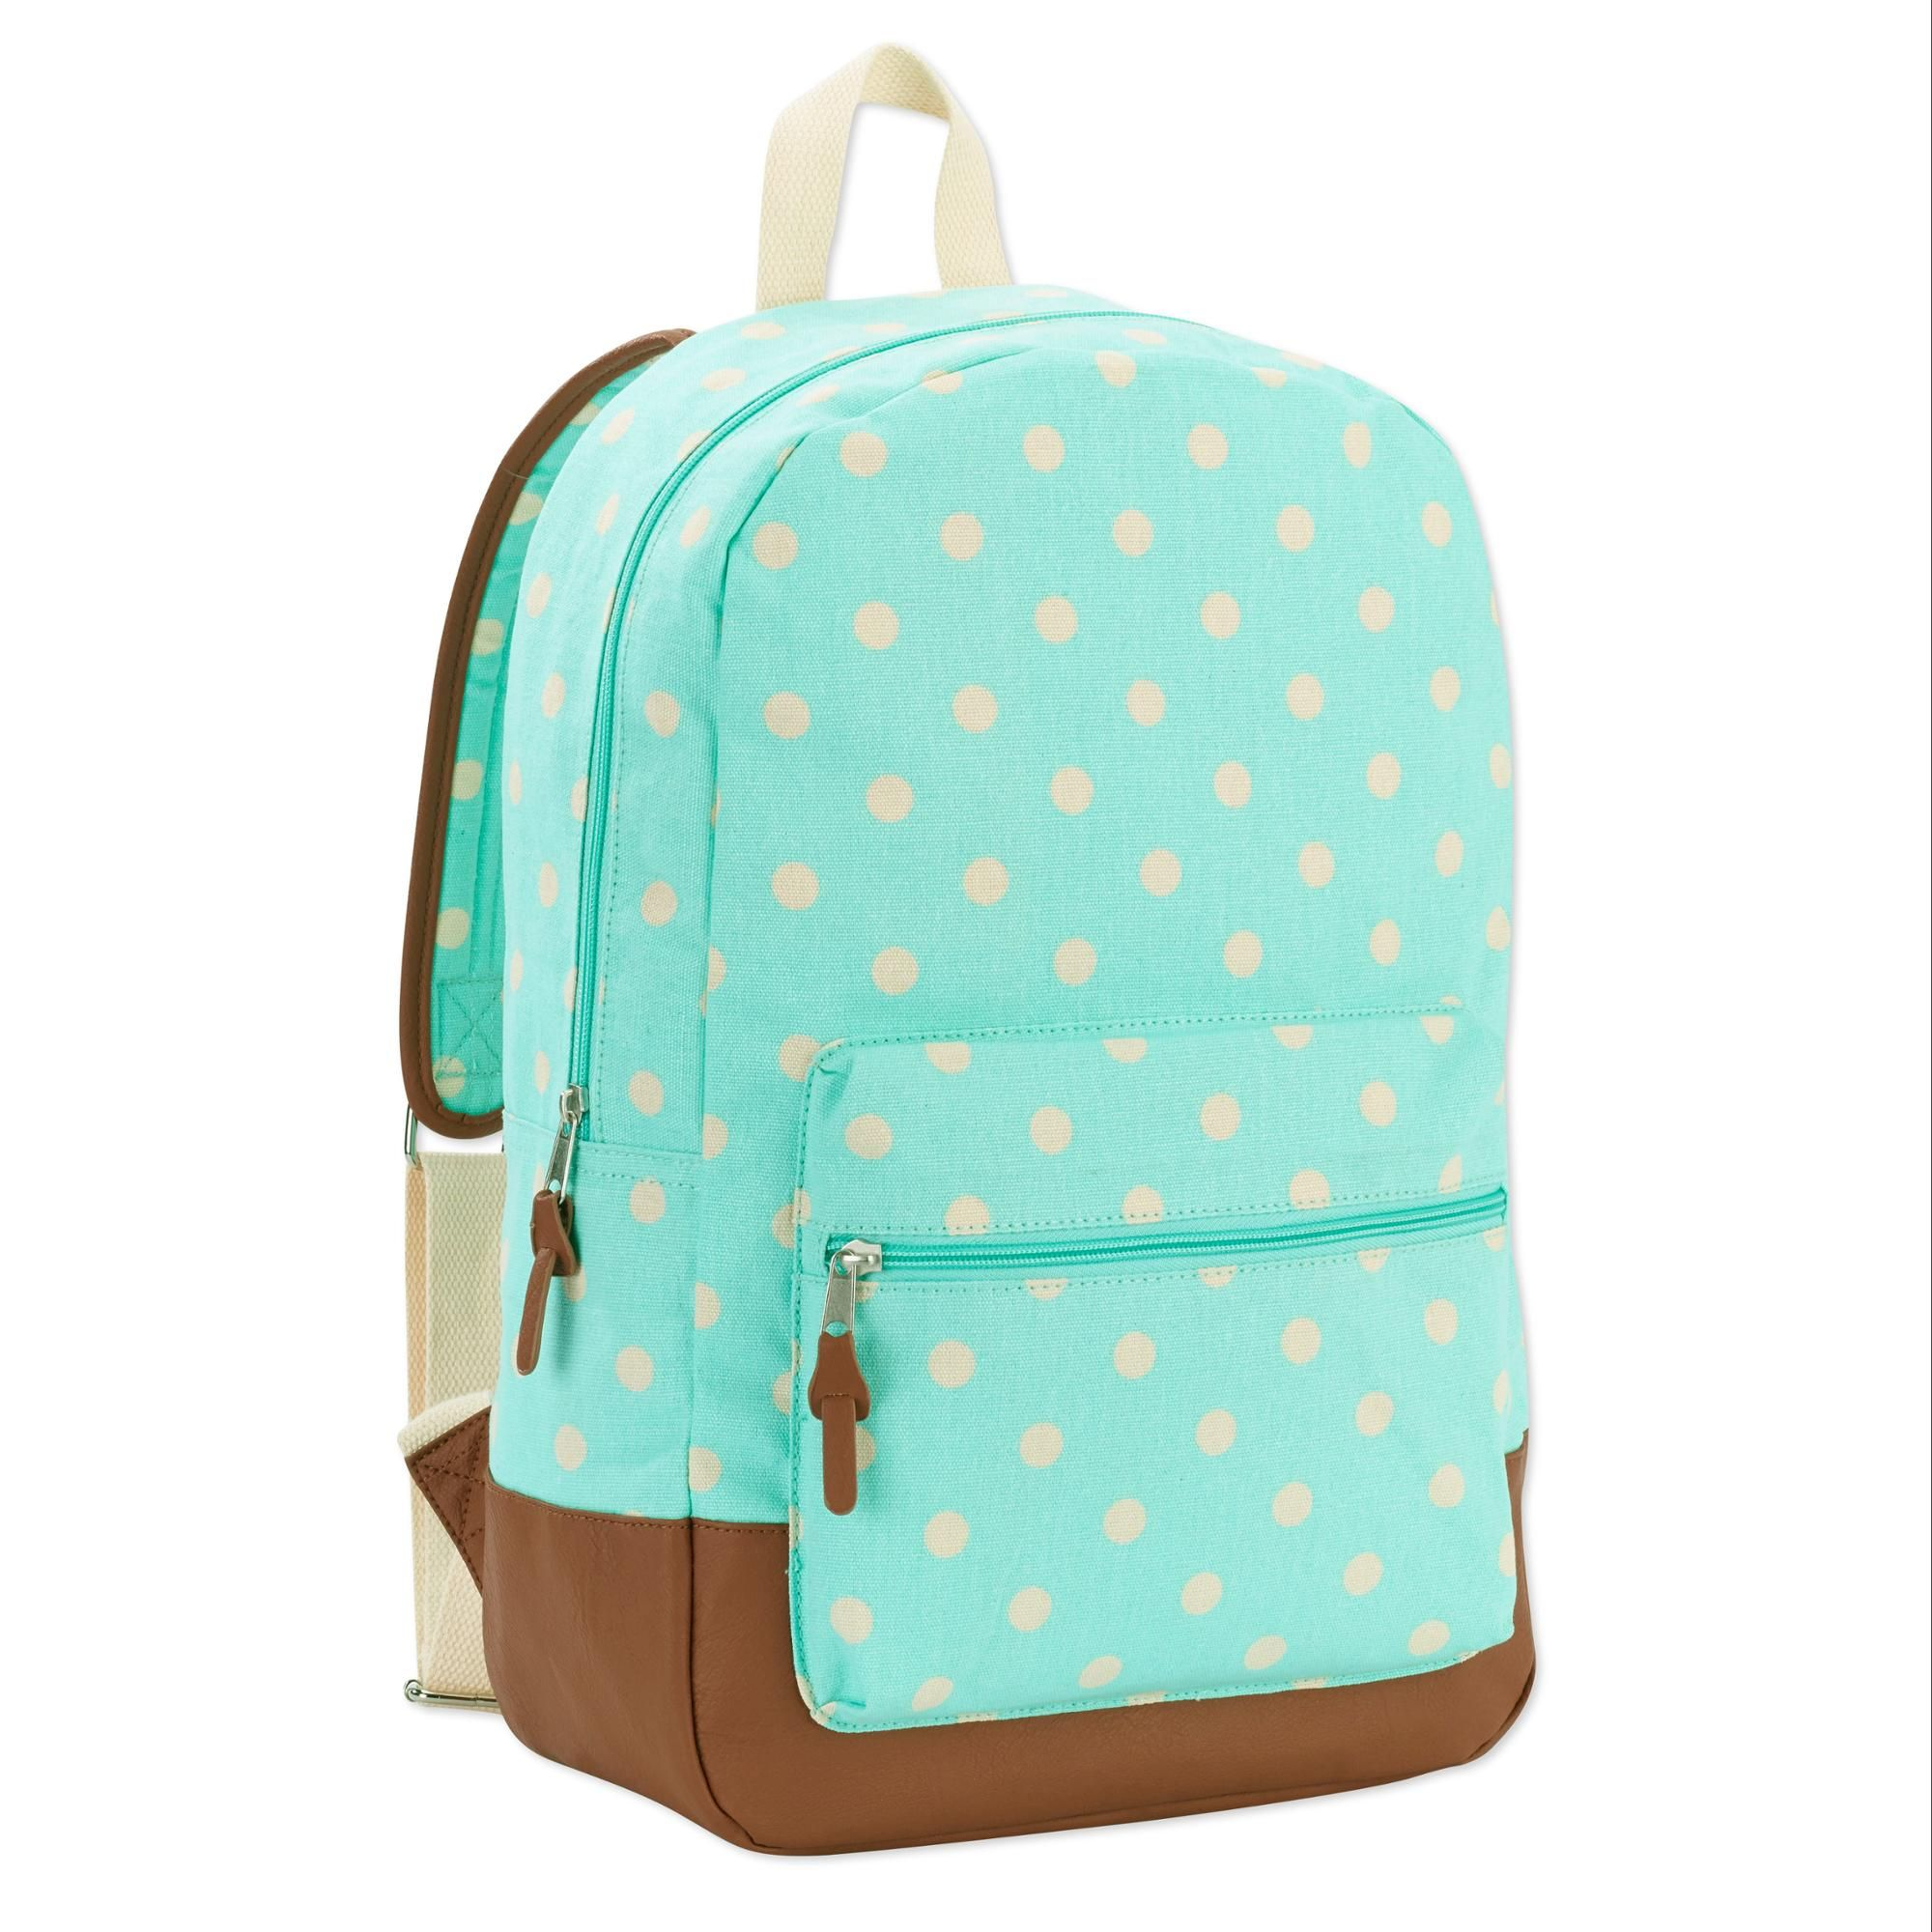 f1c358af8e Teen School Backpacks   Backpacks - Walmart.com